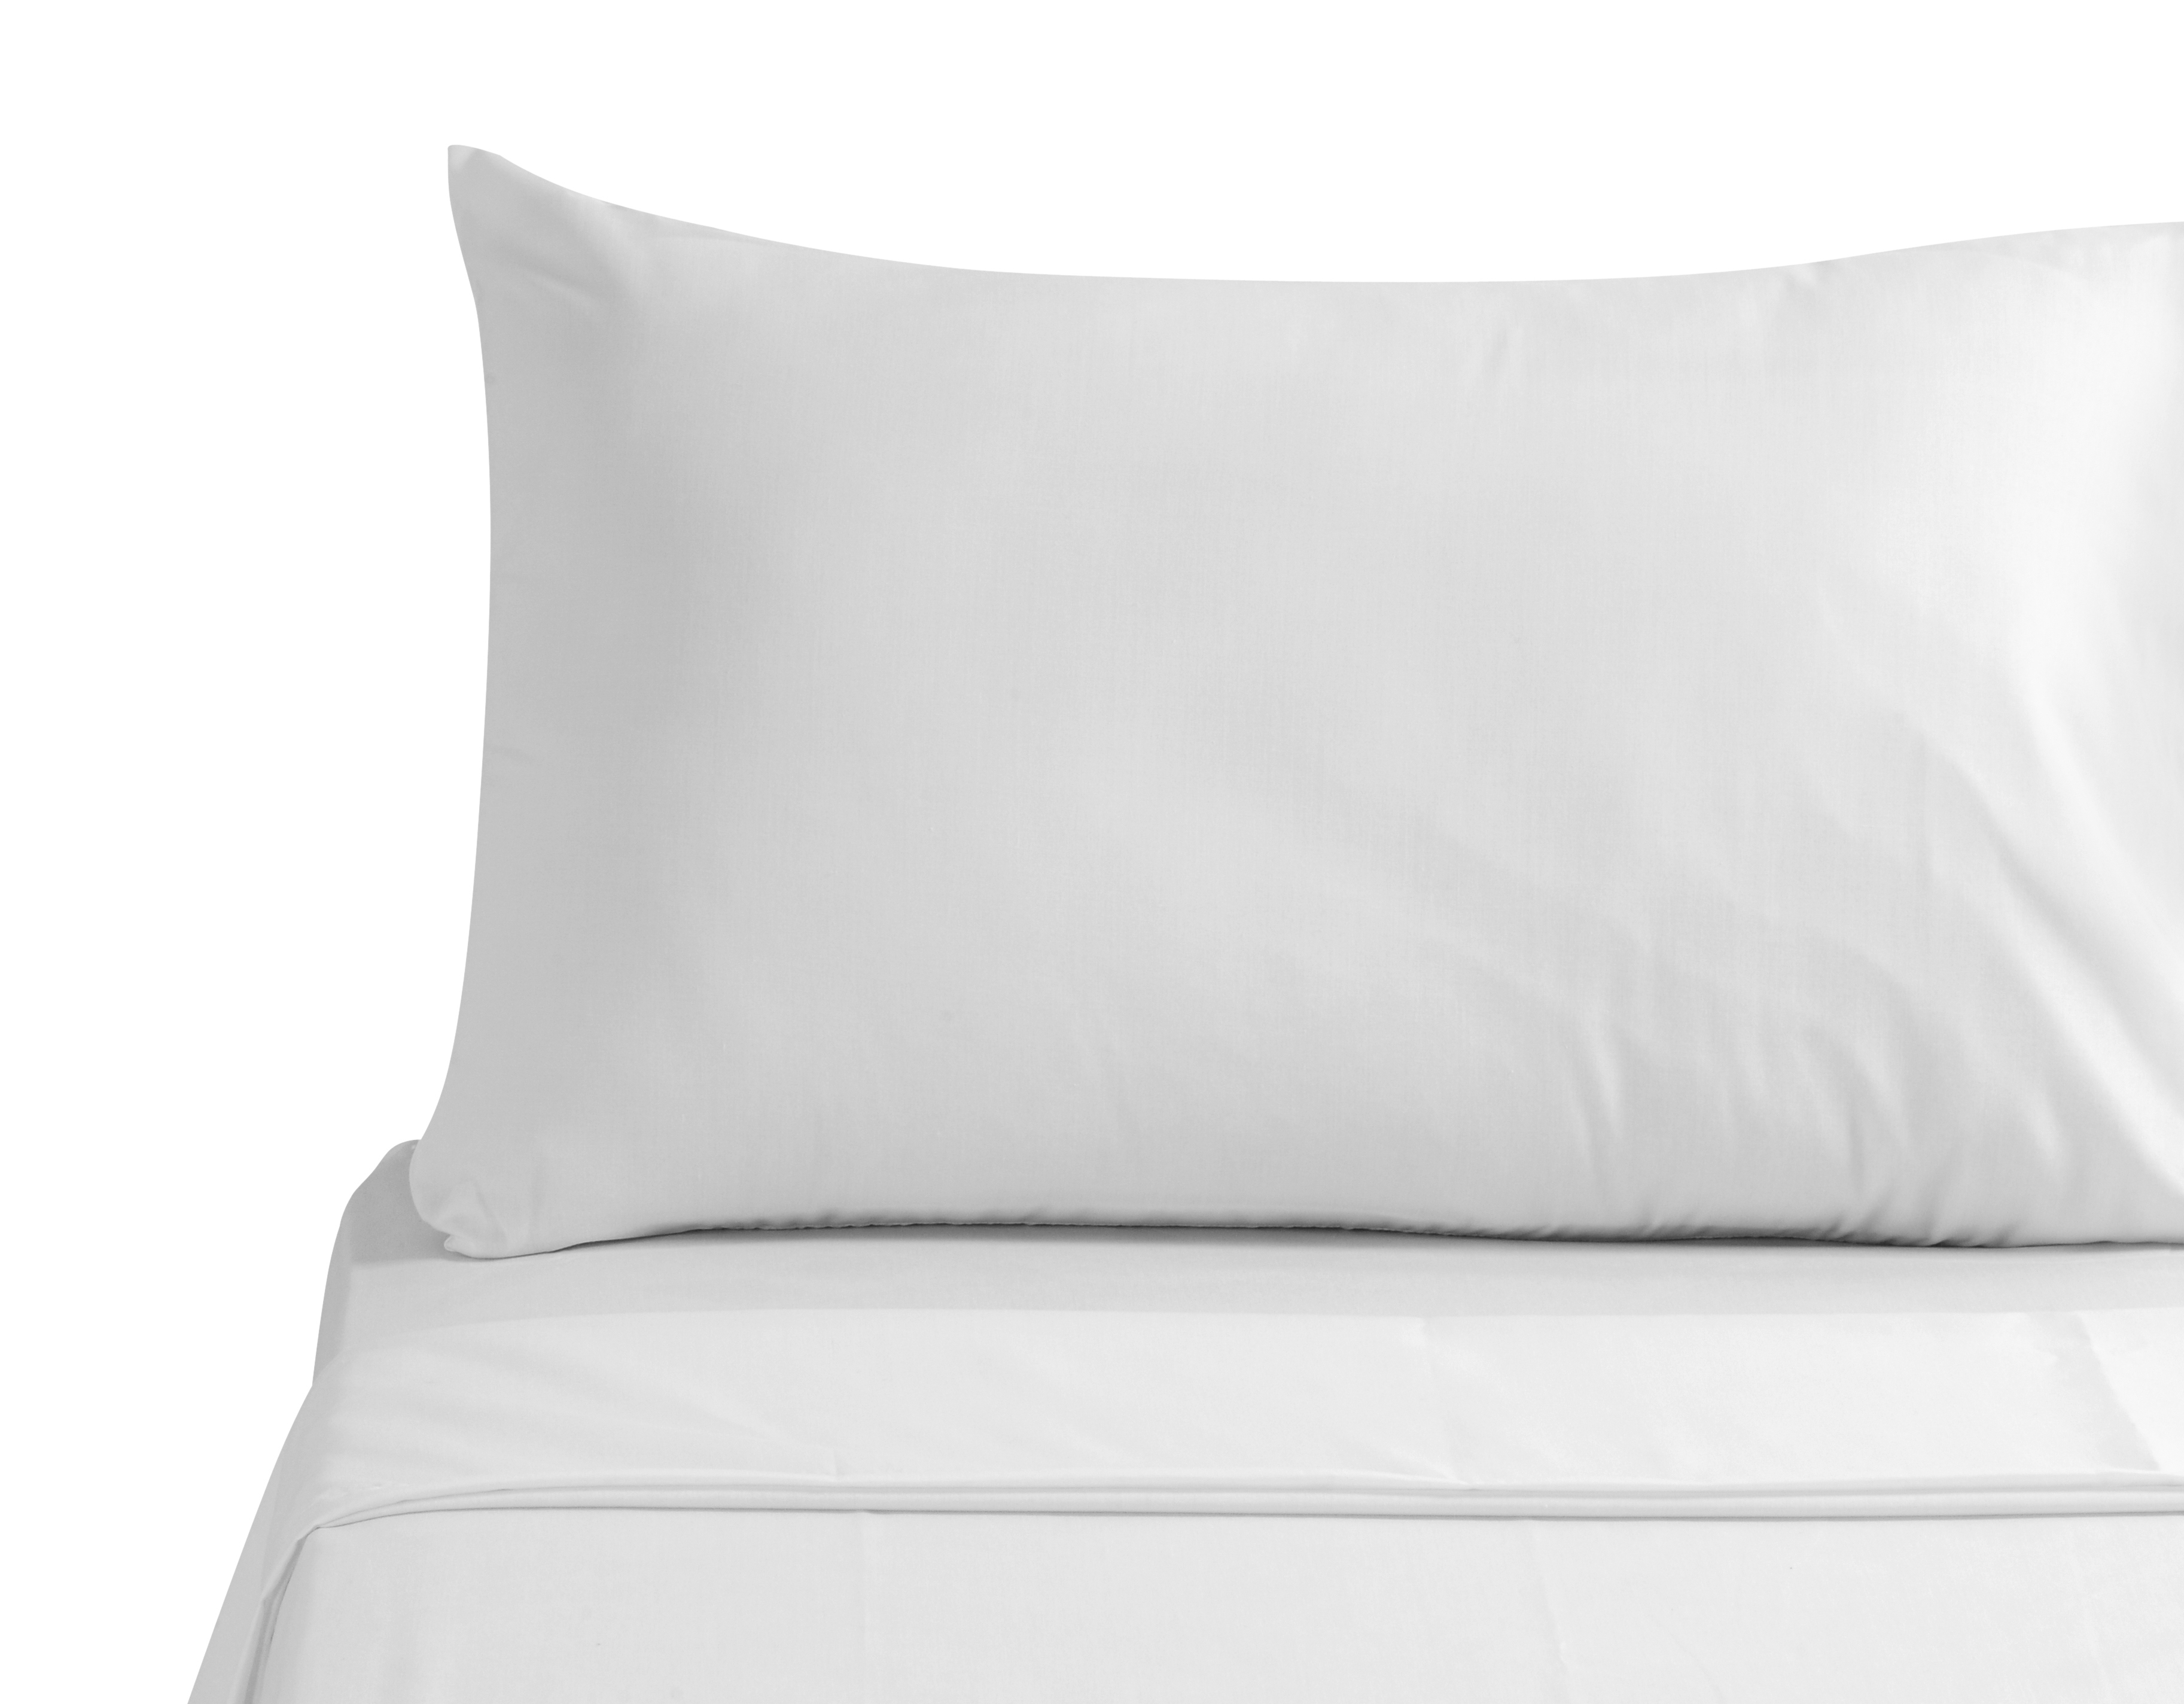 Moisture Wicking Pillow Case Wicked Sheets